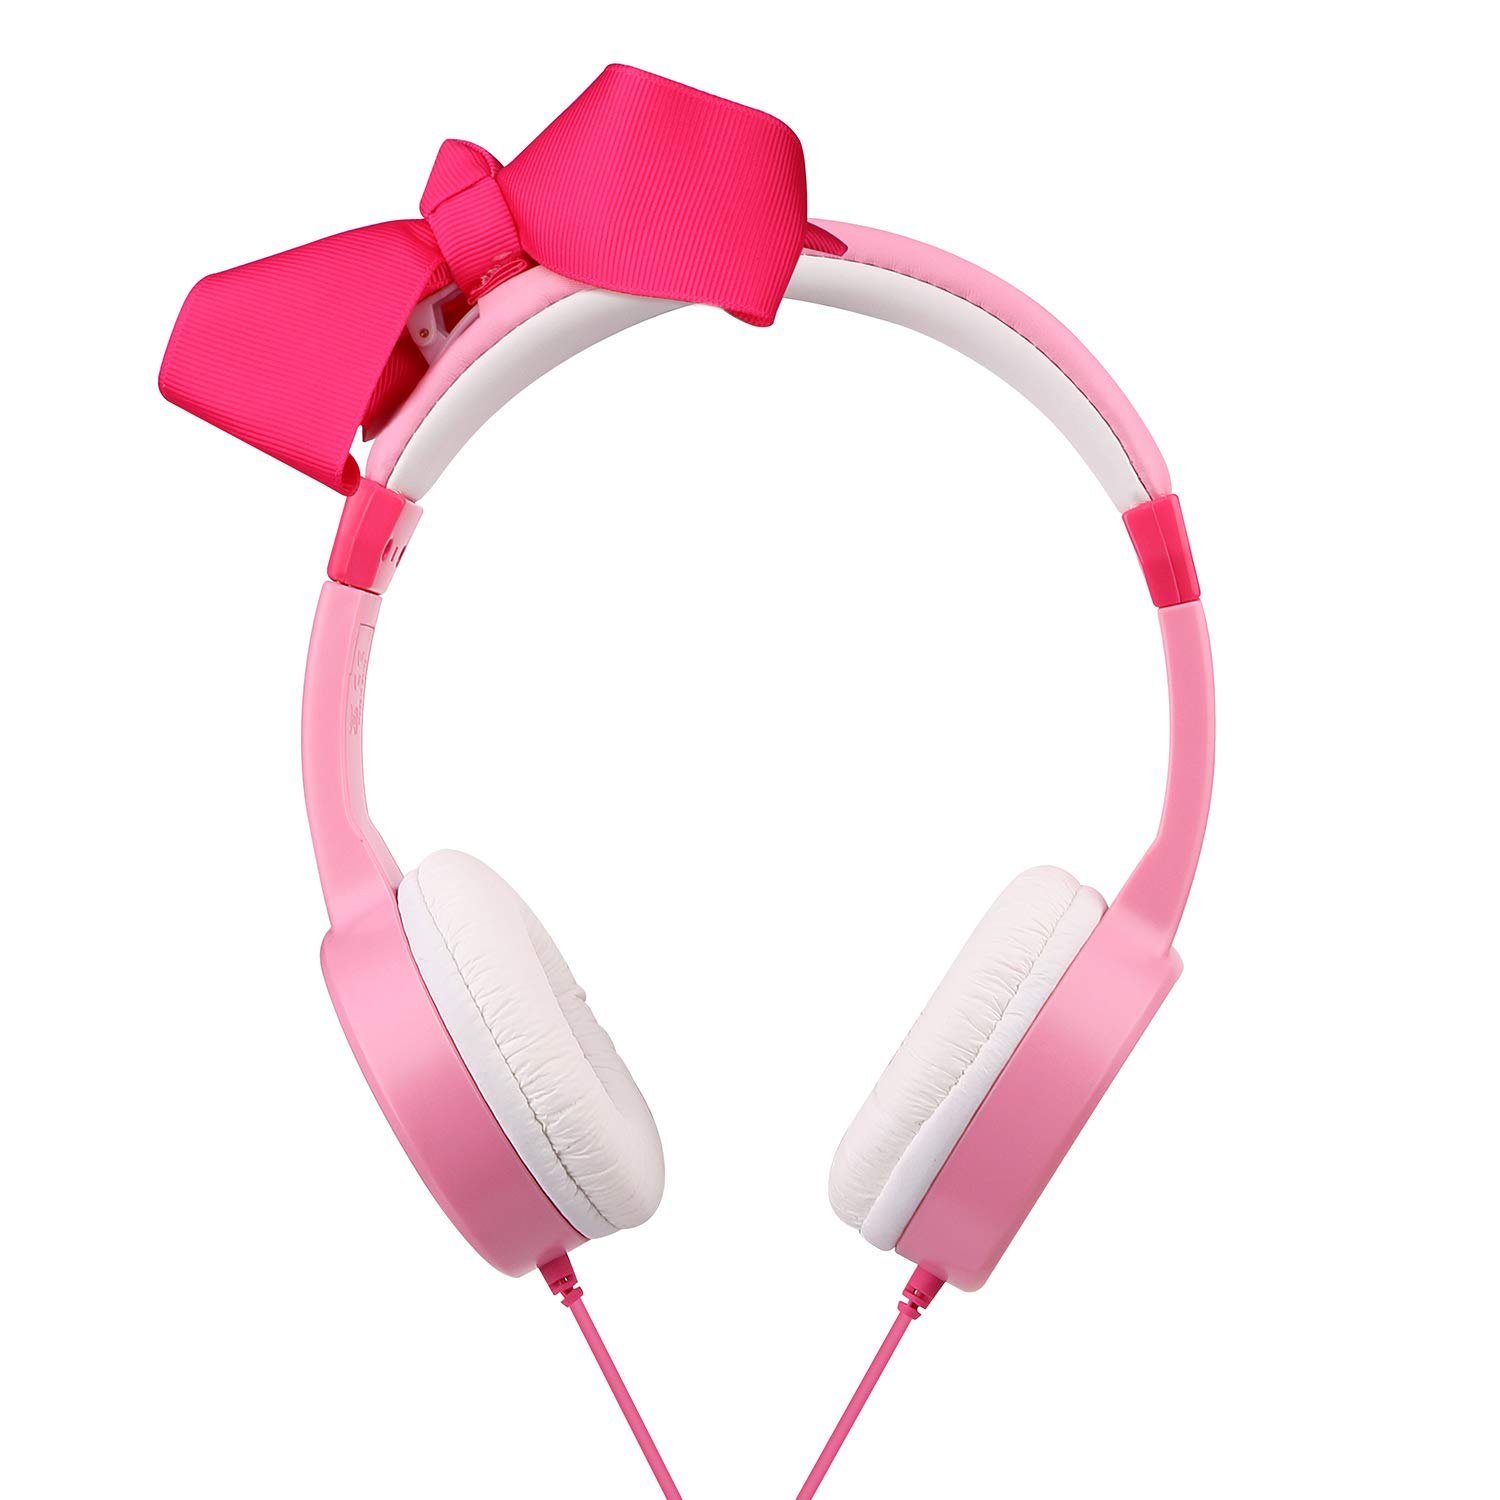 Girls Unicorn Headphones,Removable Bowknot Earphones with 85dB Volume Limited and 3.5mm Jack for iPad Cellphones Computer MP3/4 Kindle,Children Headset for School,Birthday Gifts (Bowknot) by JBUNION (Image #3)